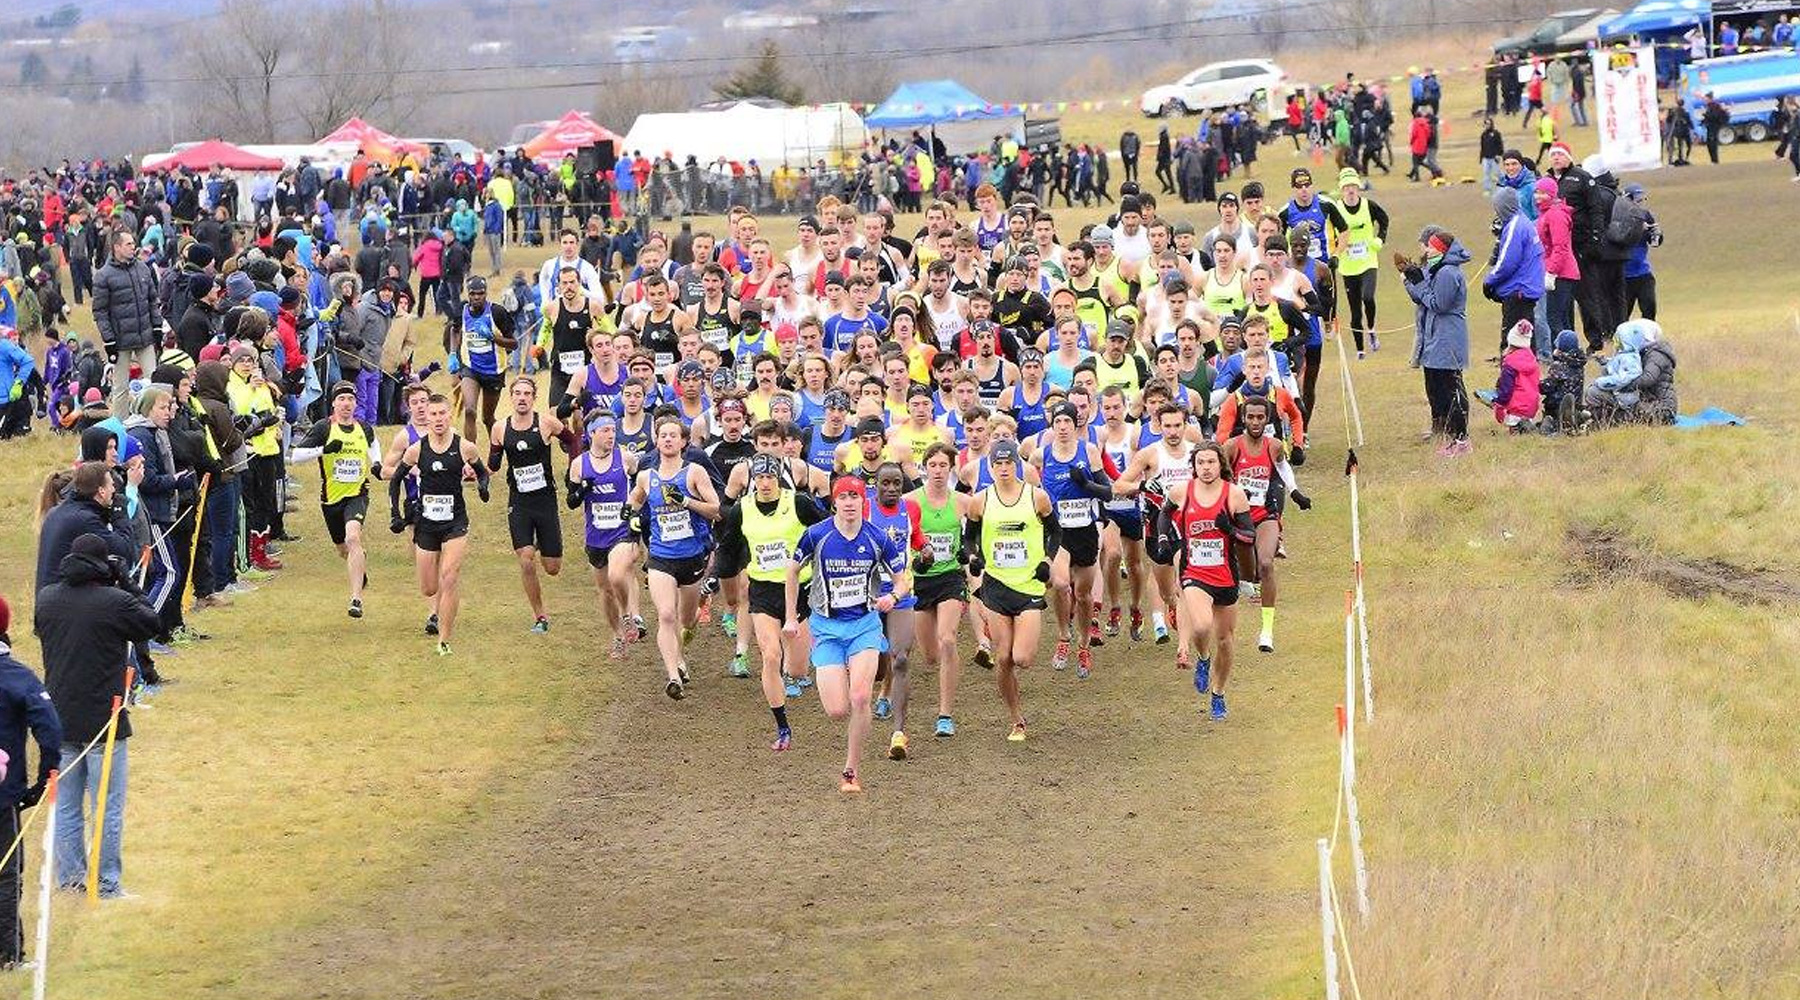 championnats canadien cross-country